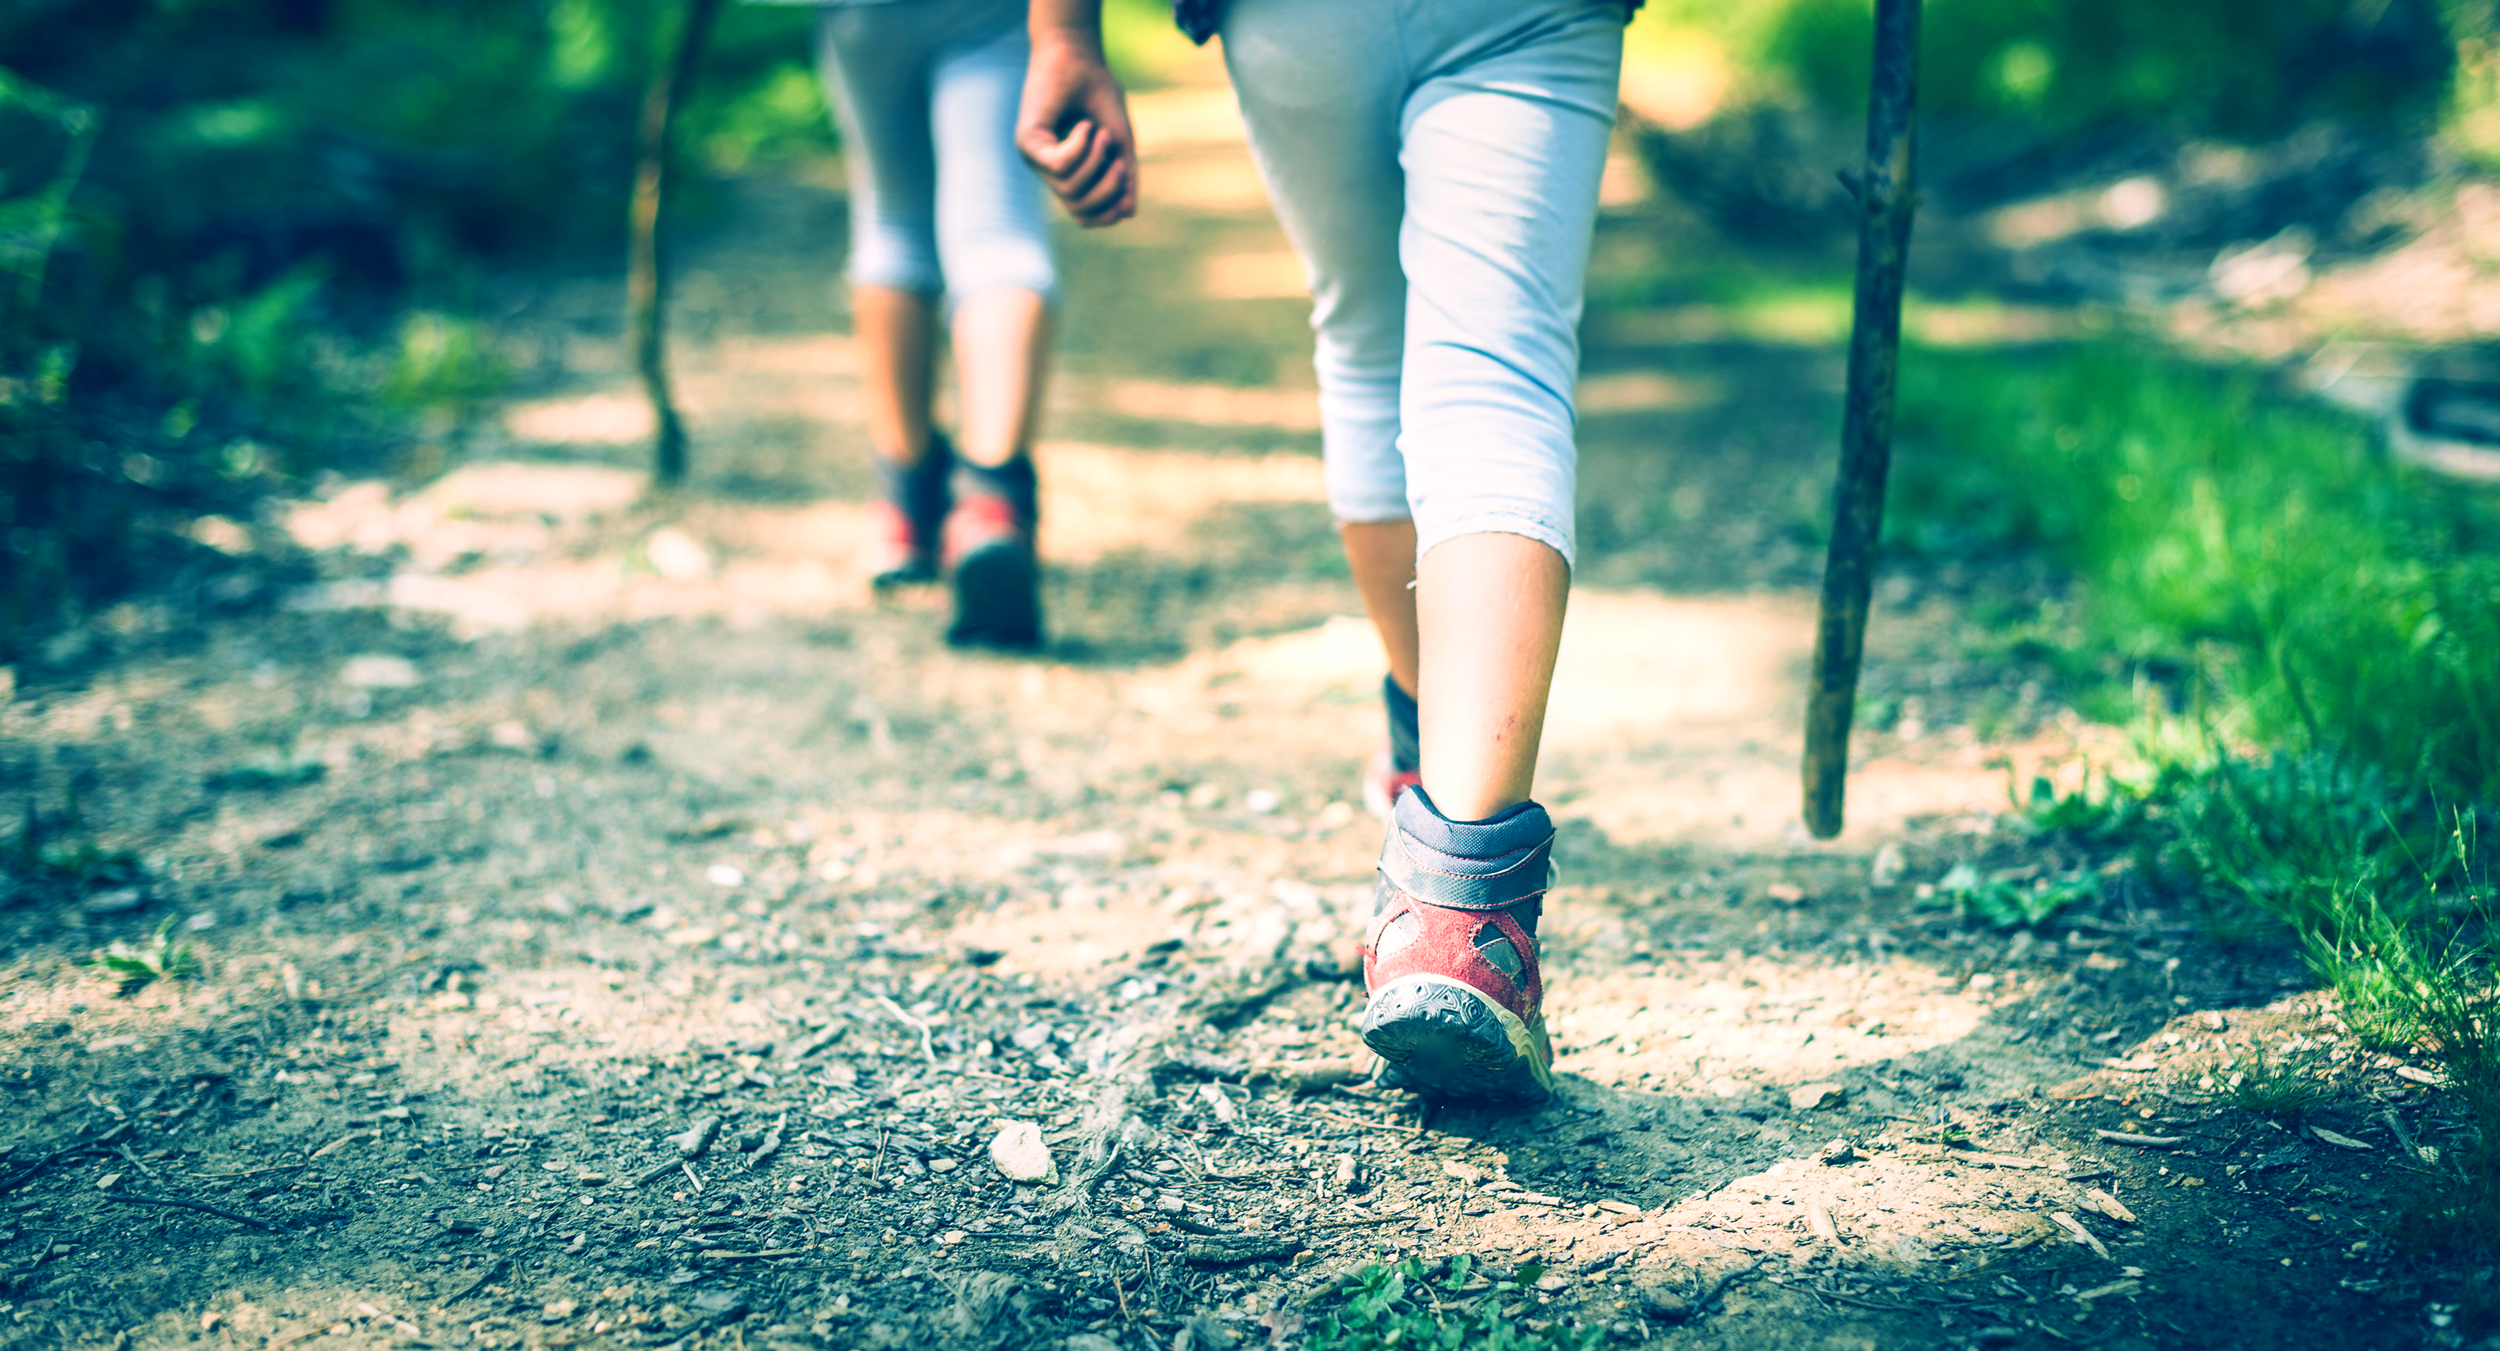 Prepare your feet for long distance walking events